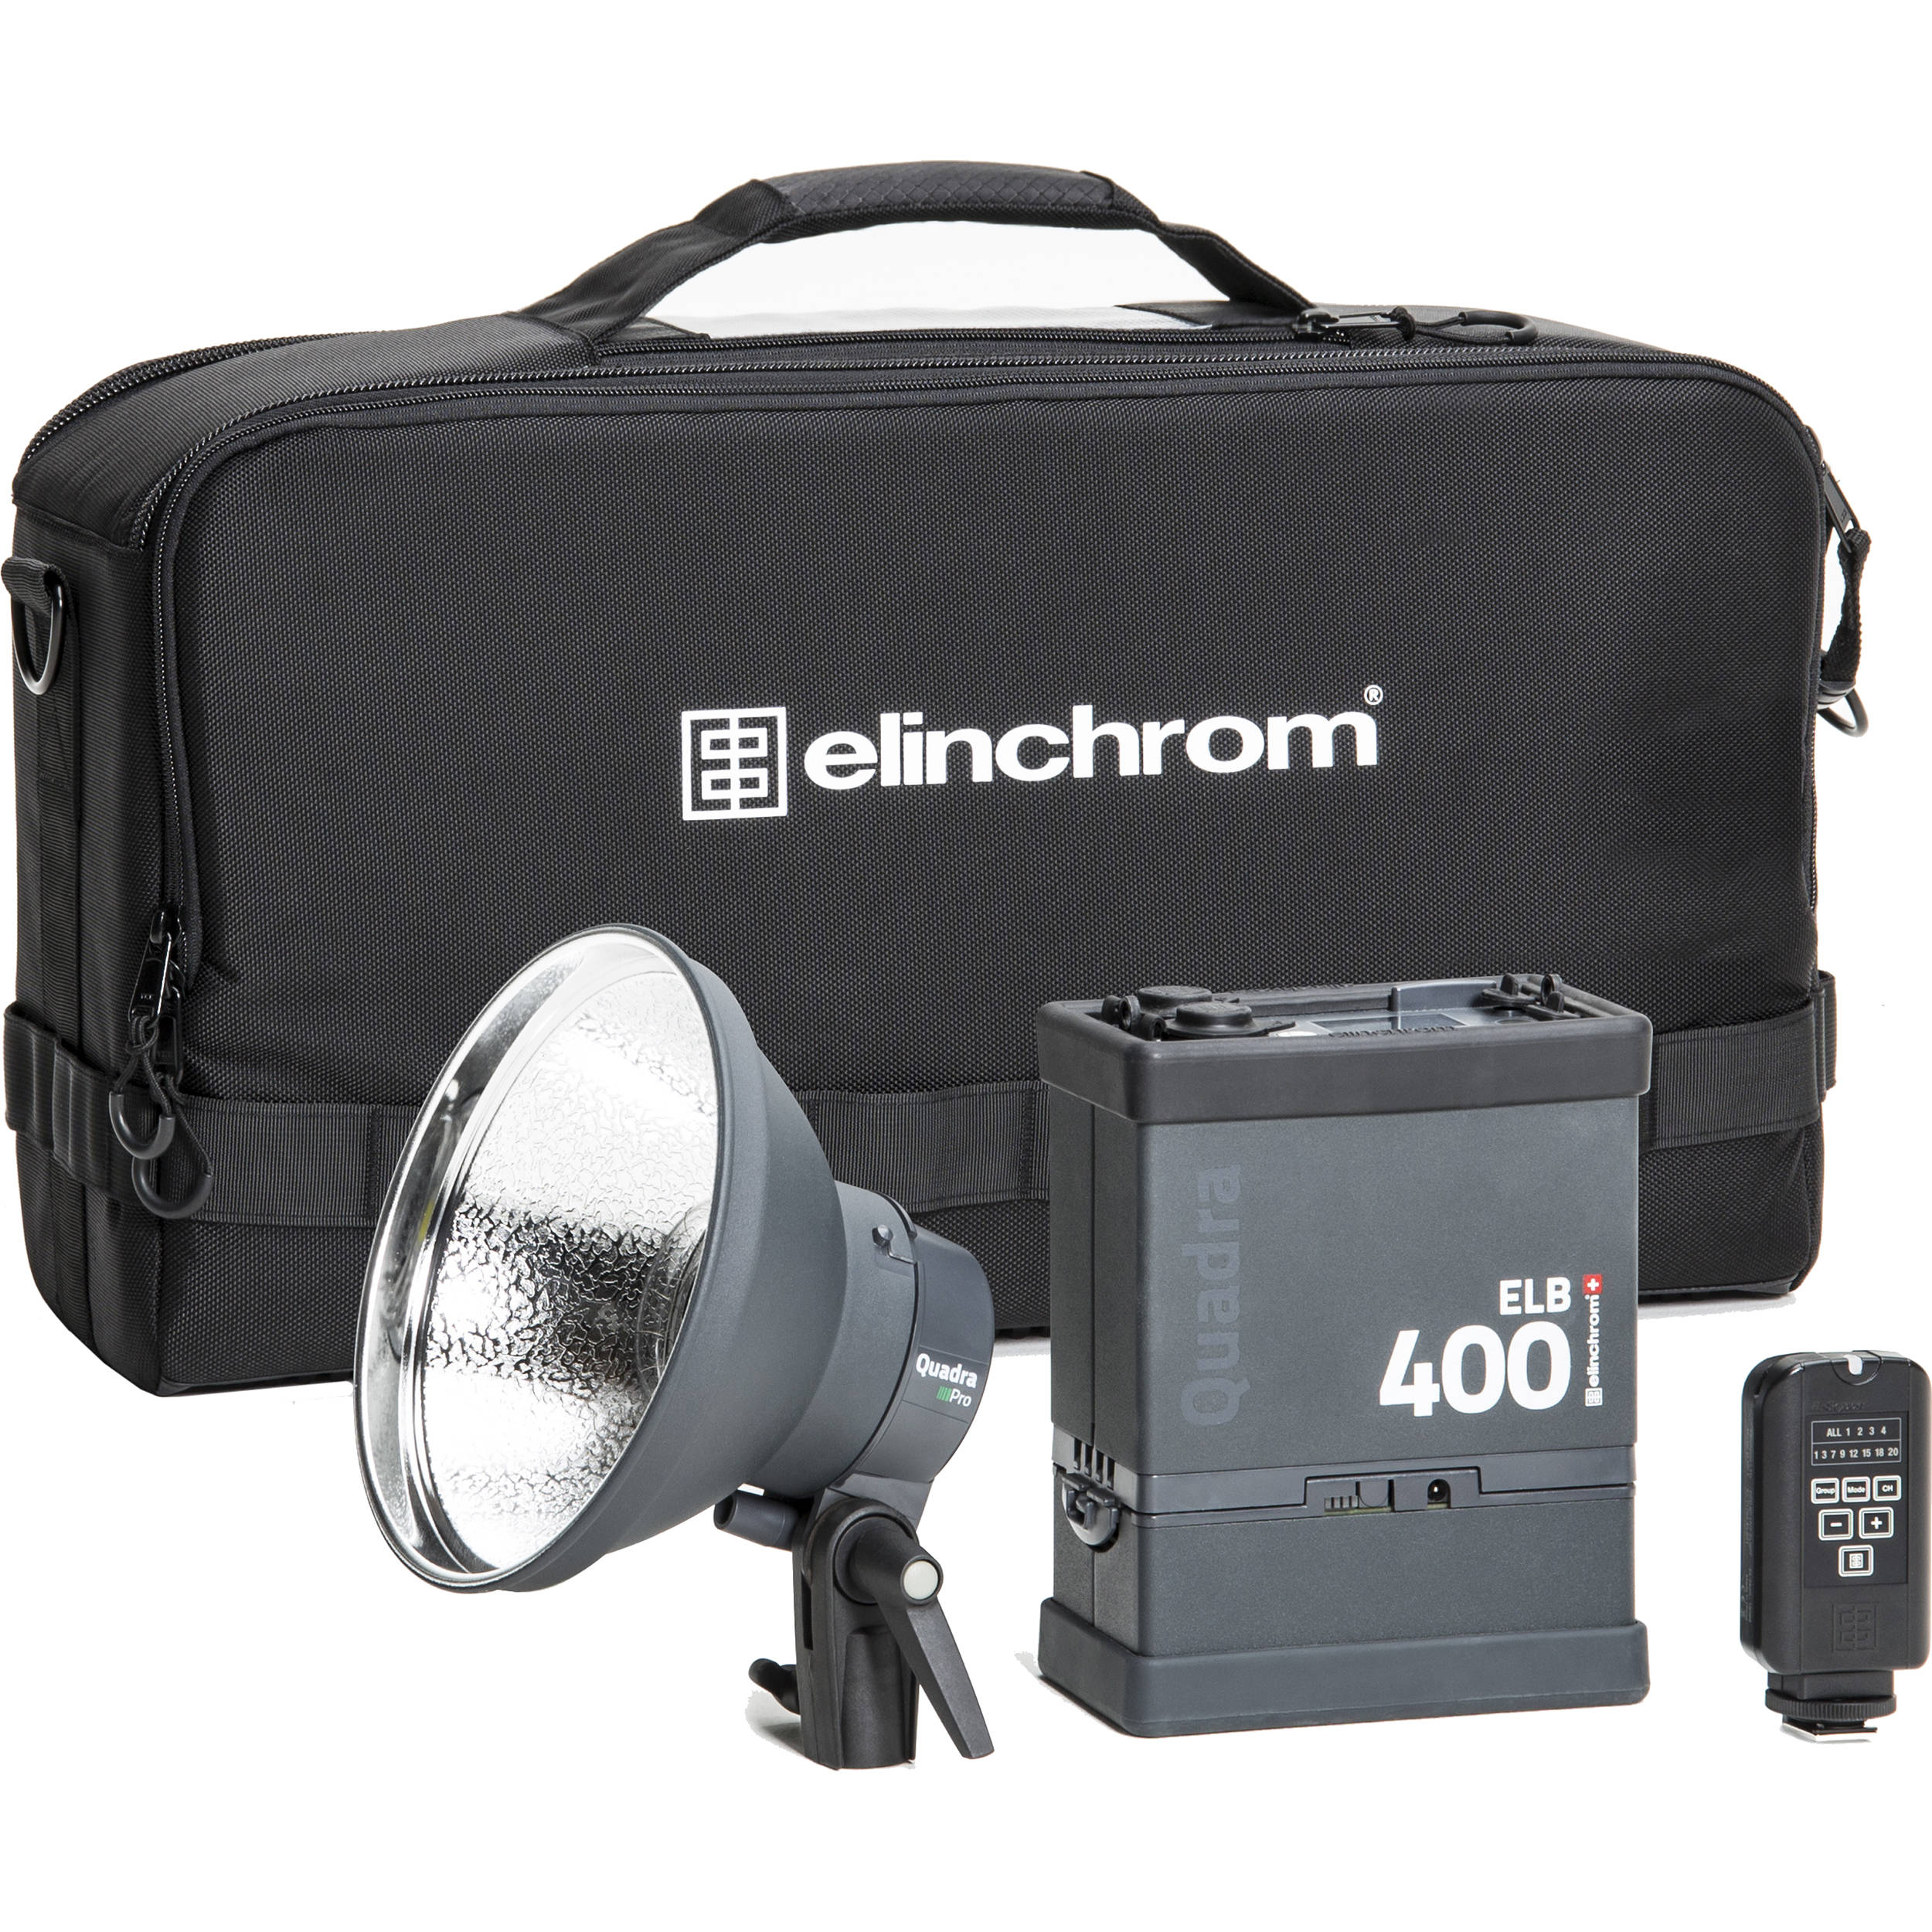 Elinchrom 500 Studio Lighting Kit: Elinchrom ELB 400 Pro To Go Kit EL10419.1 B&H Photo Video